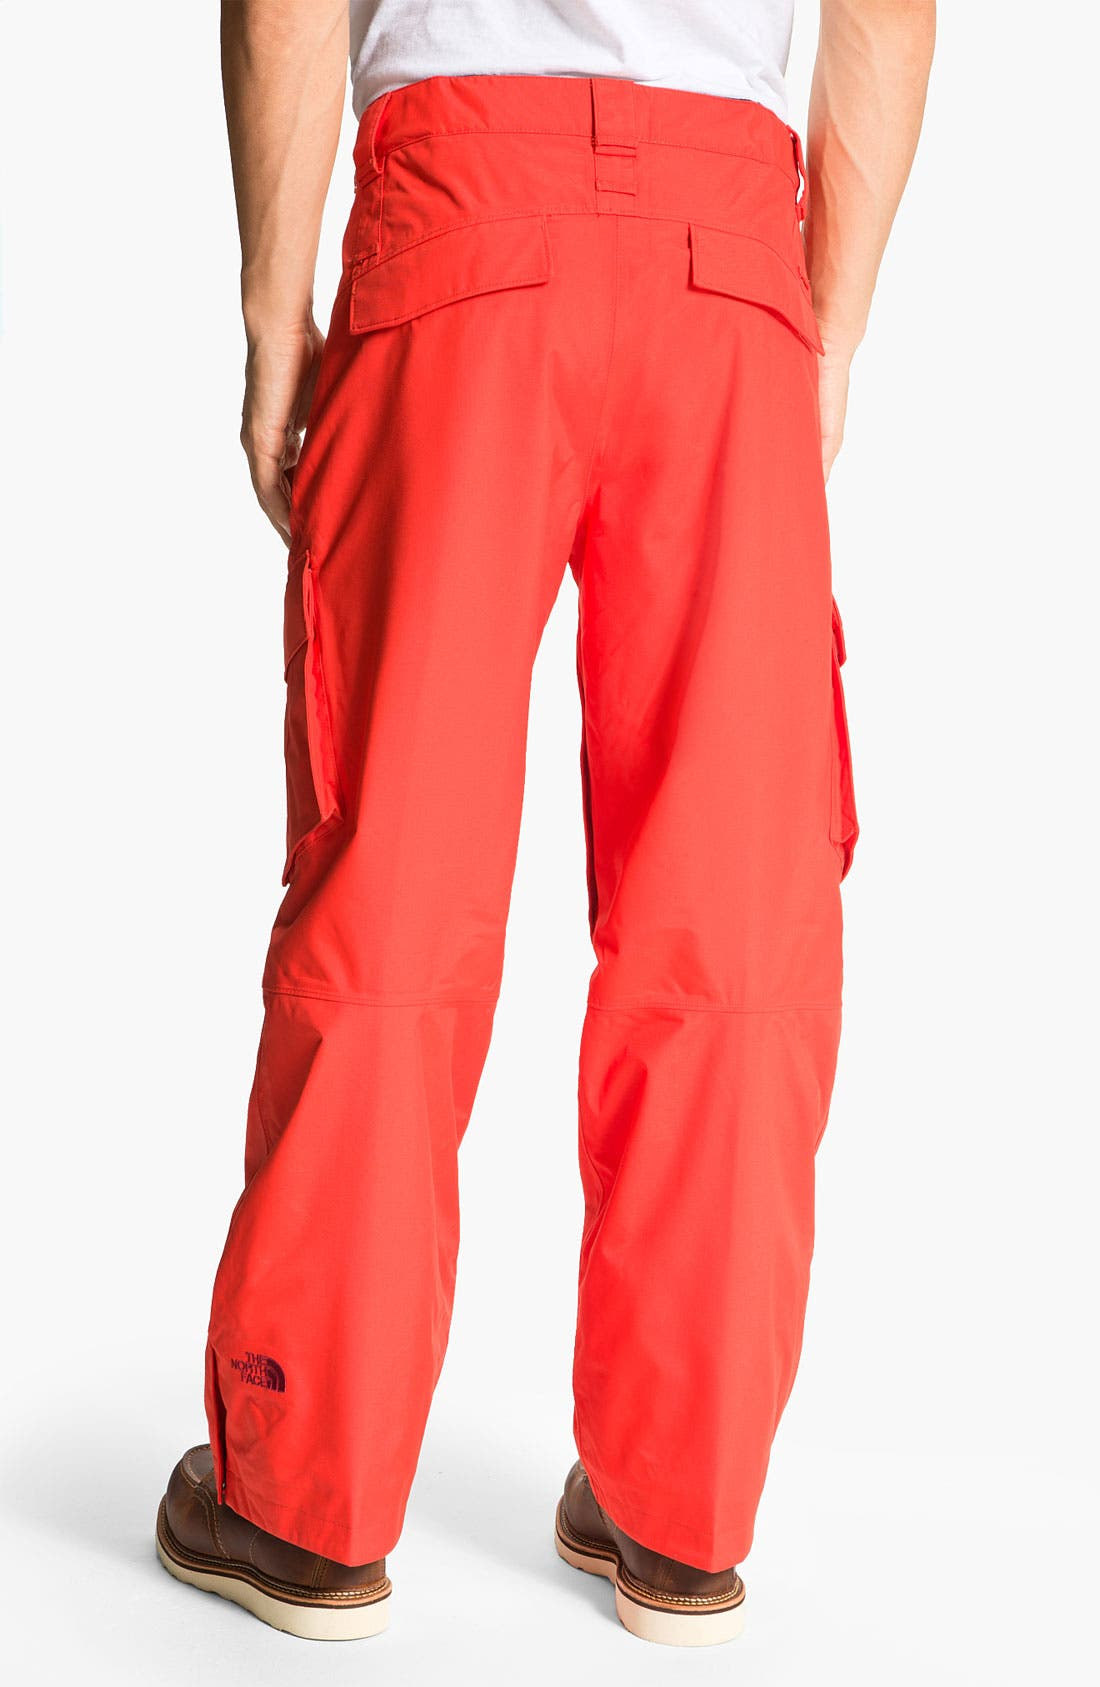 Alternate Image 2  - The North Face 'Slasher' Cargo Ski Pants (Online Only)